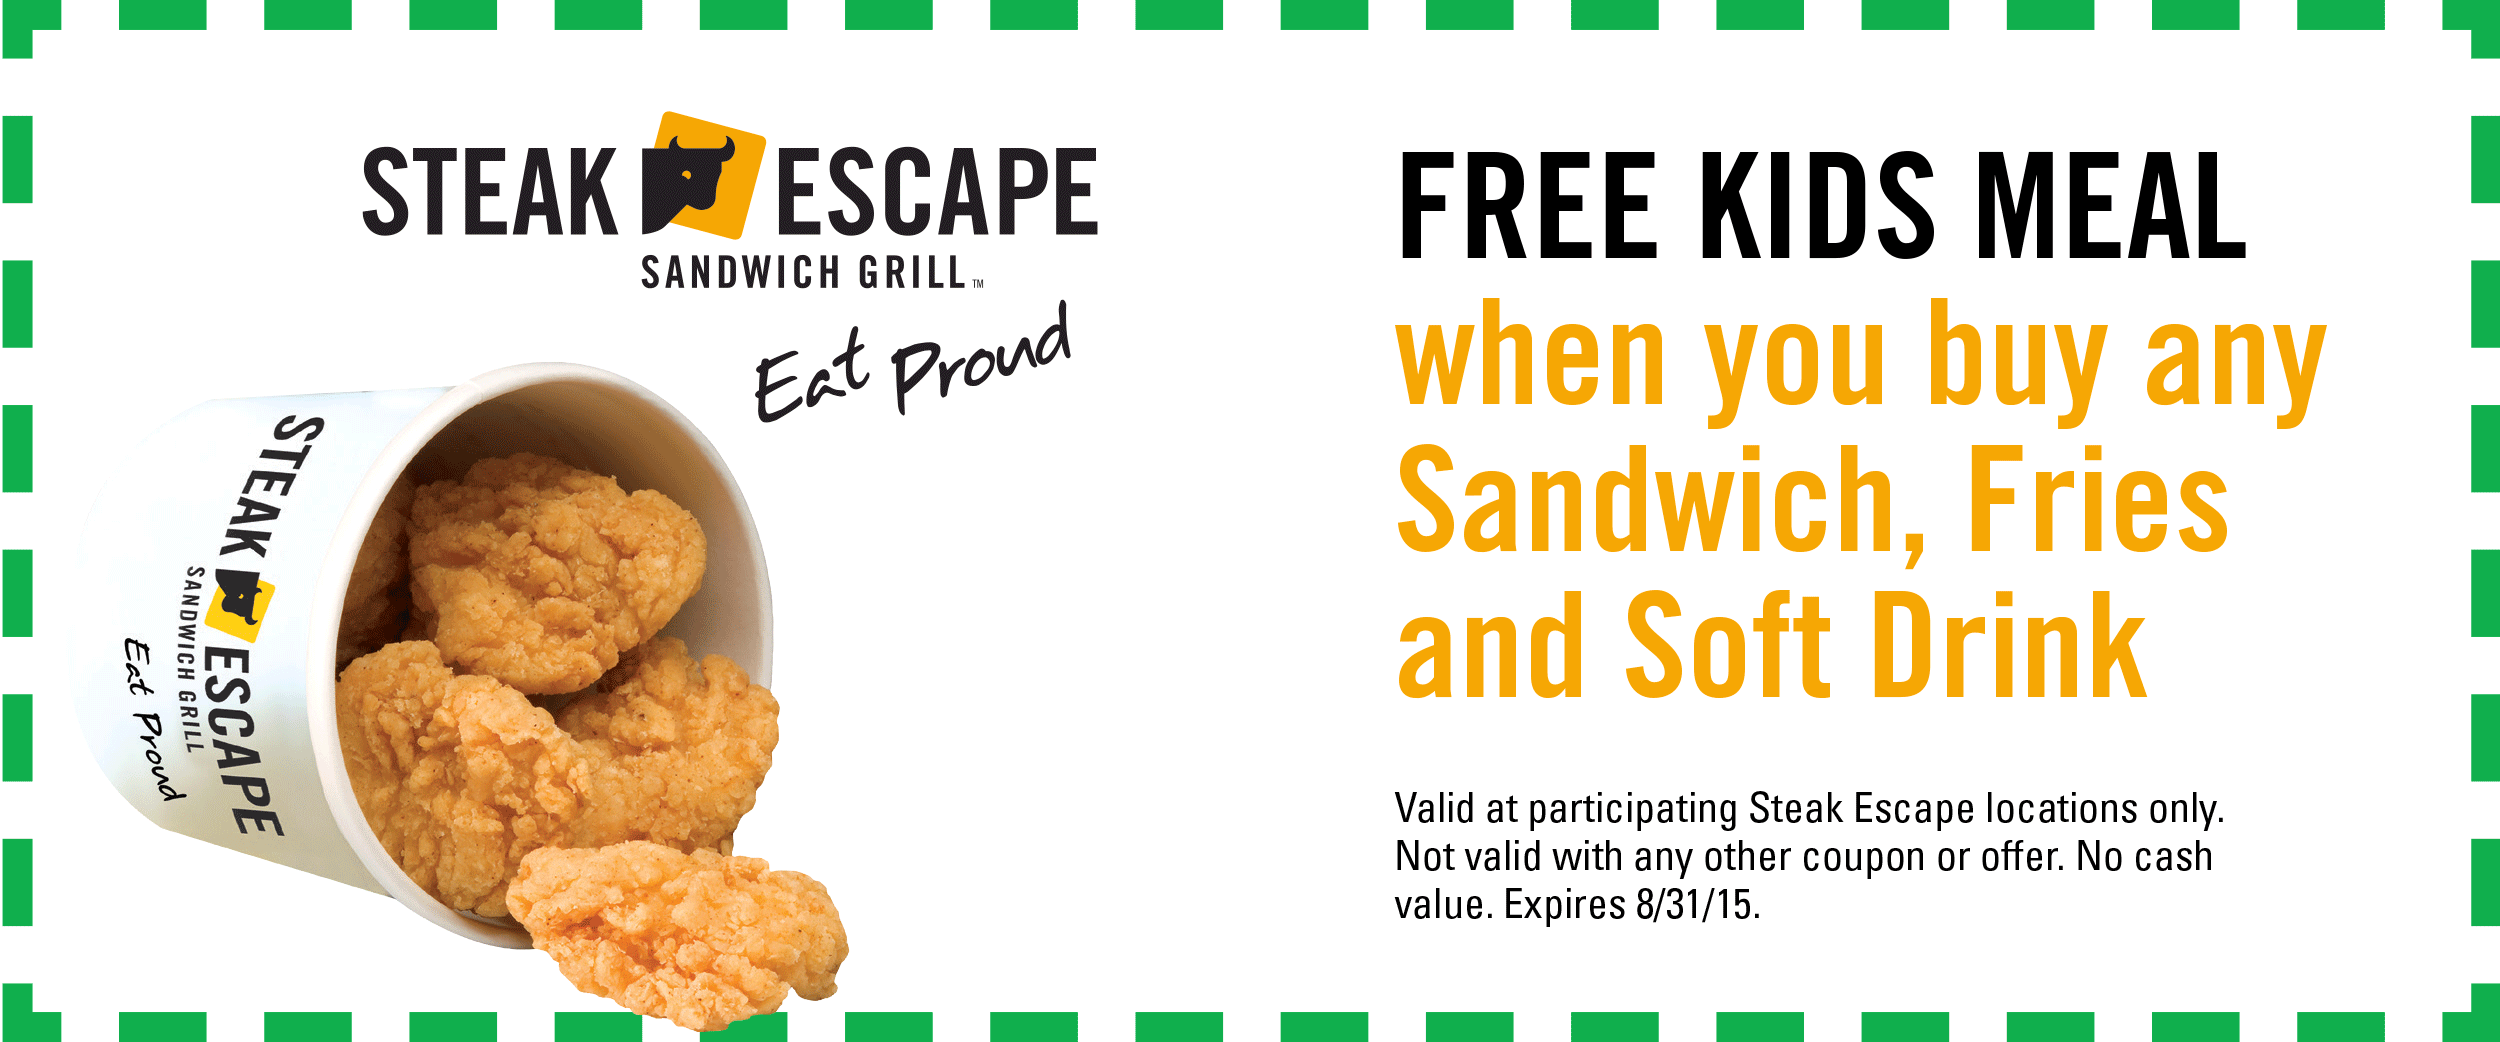 Steak Escape Coupon February 2019 Free kids meal with yours at Steak Escape sandwich grill